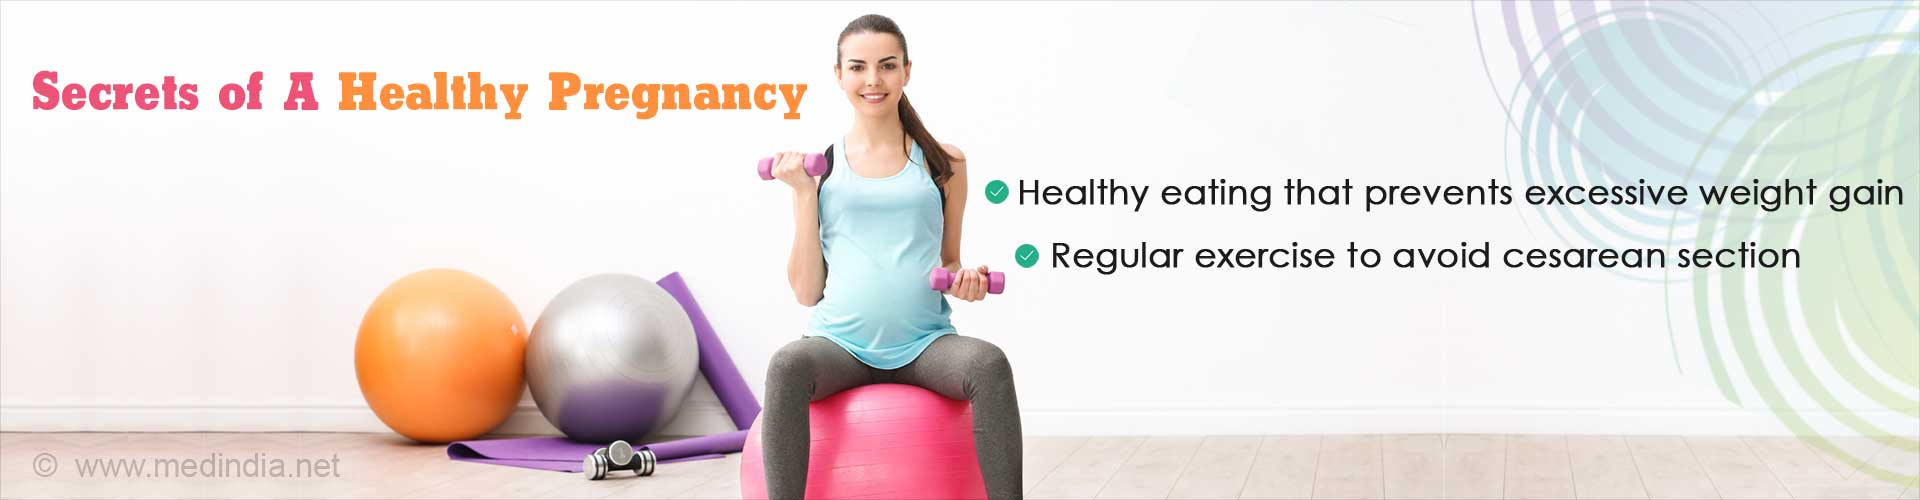 Exercise and Healthy Diet Reduces Risk of Excessive Weight Gain, Diabetes